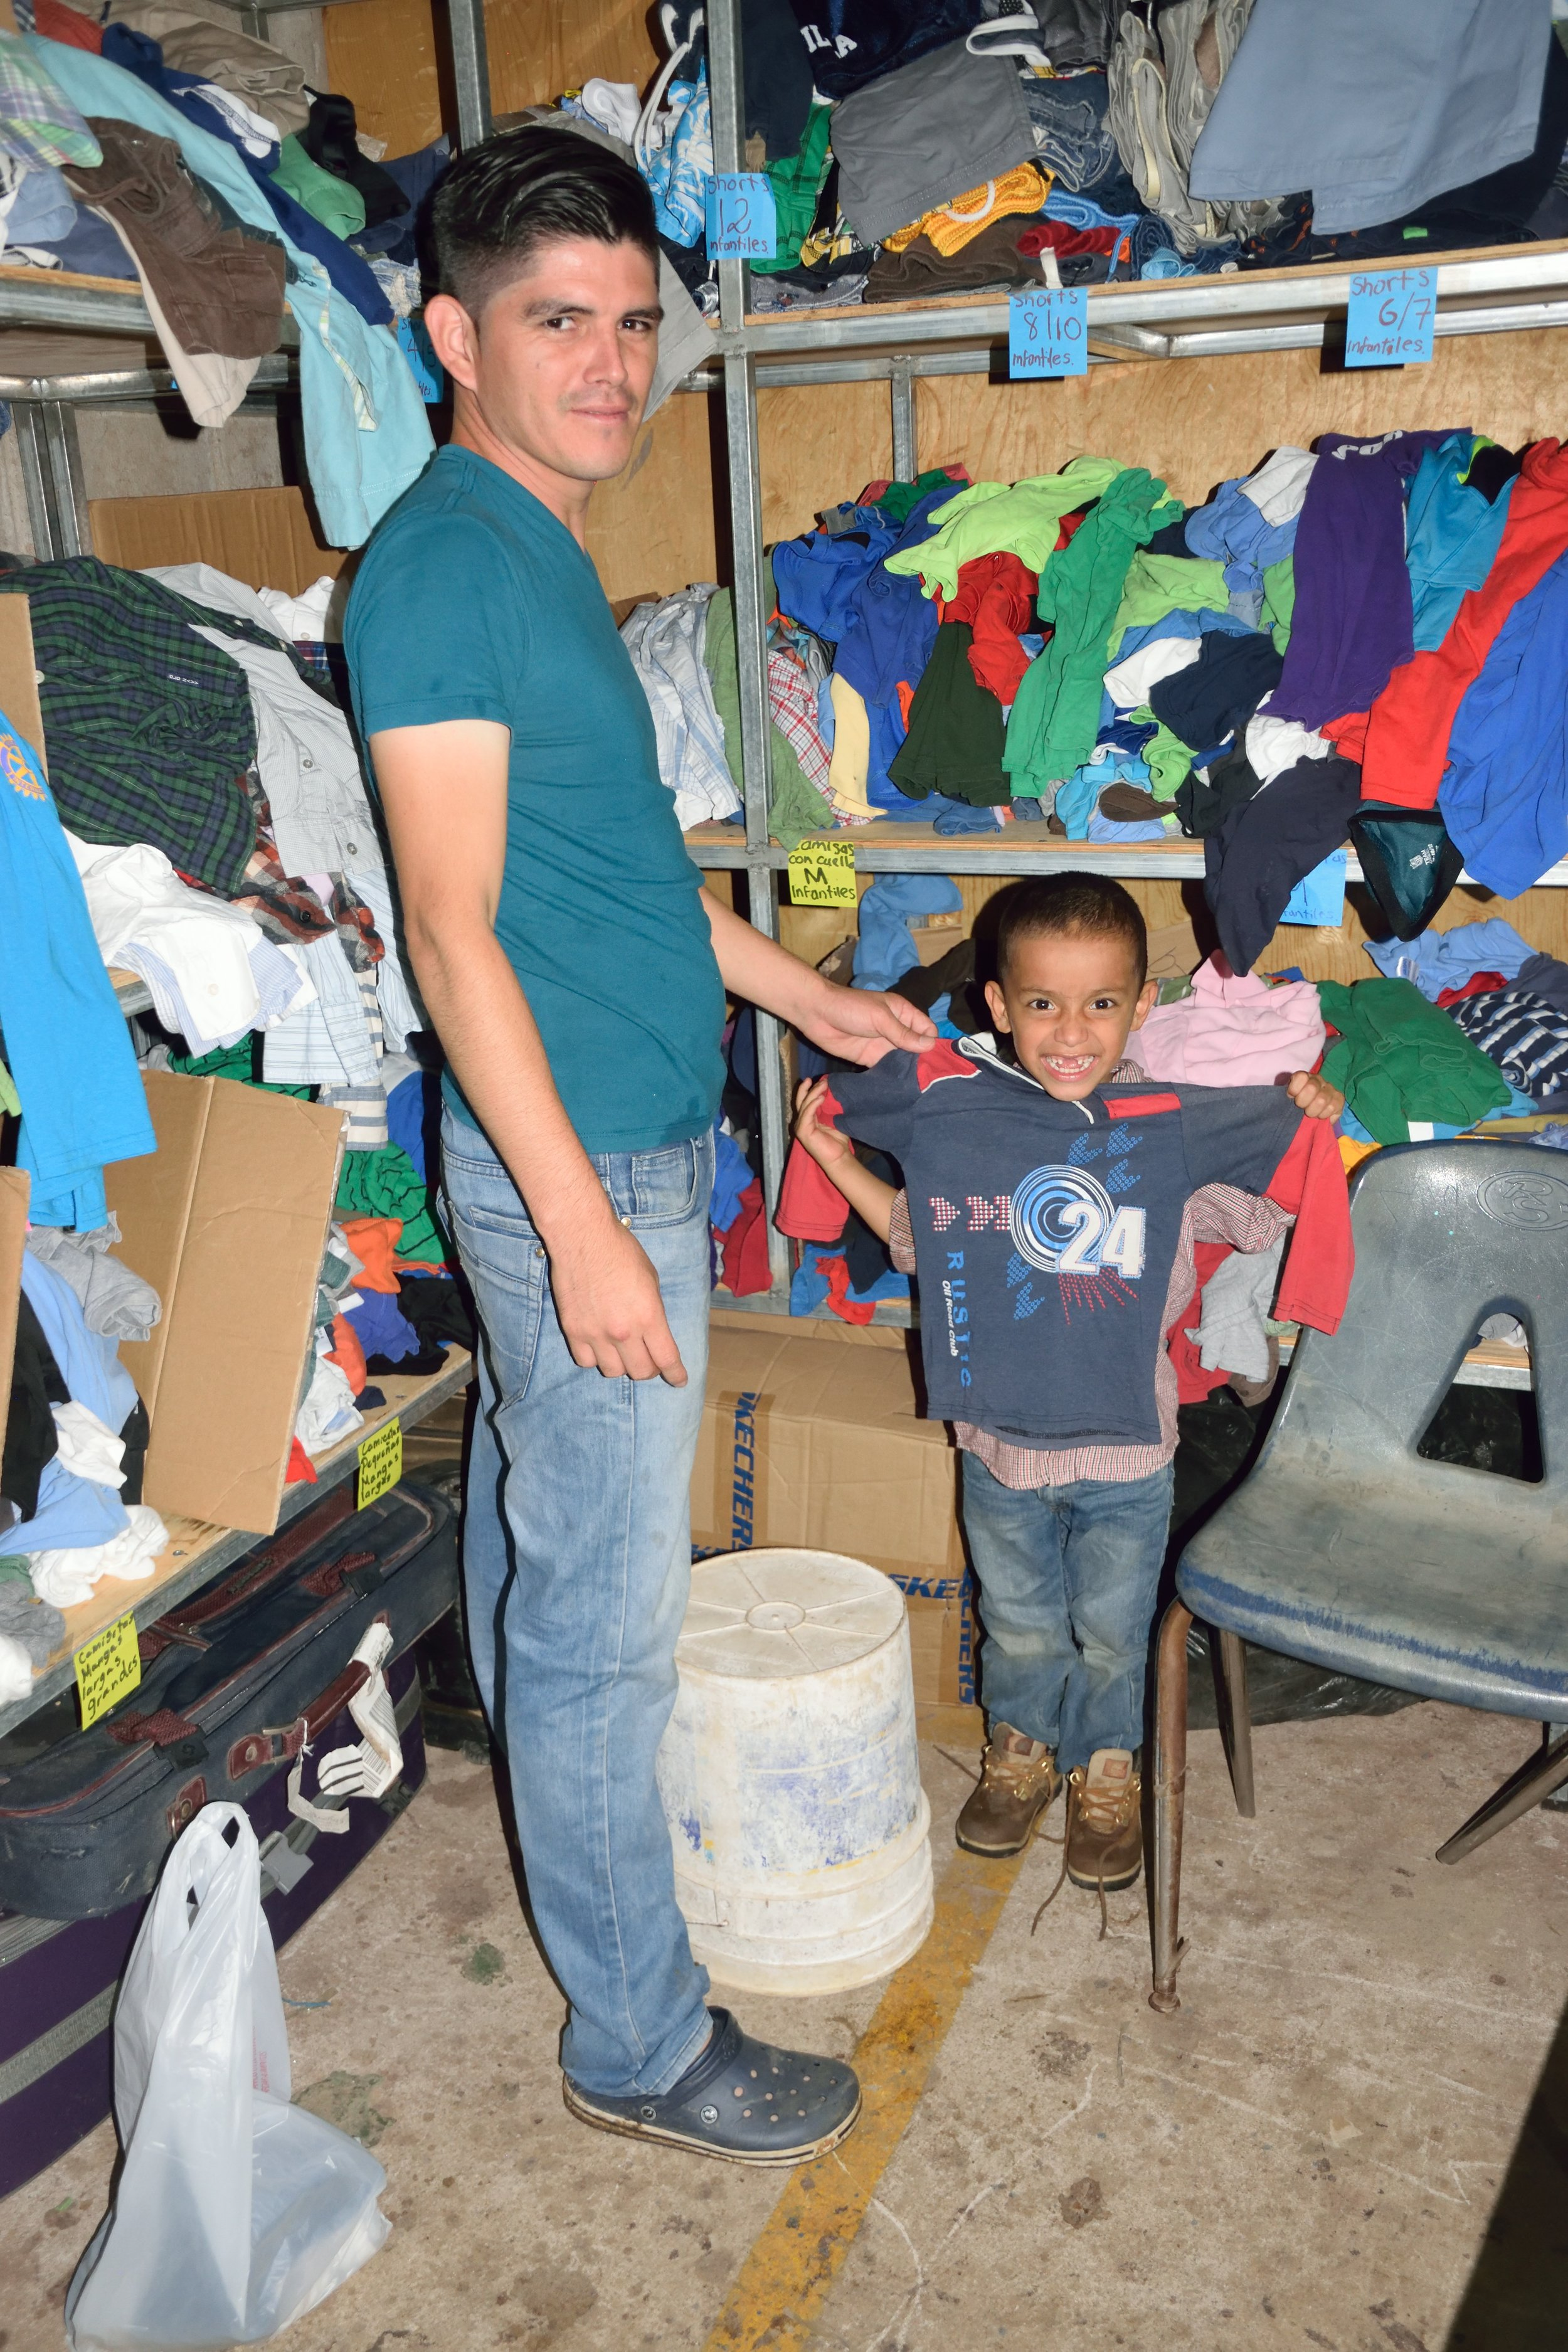 Here, one of our 'padrinos' helps one of the young boys in 'hogar' 5 try on and pick out a new shirt!